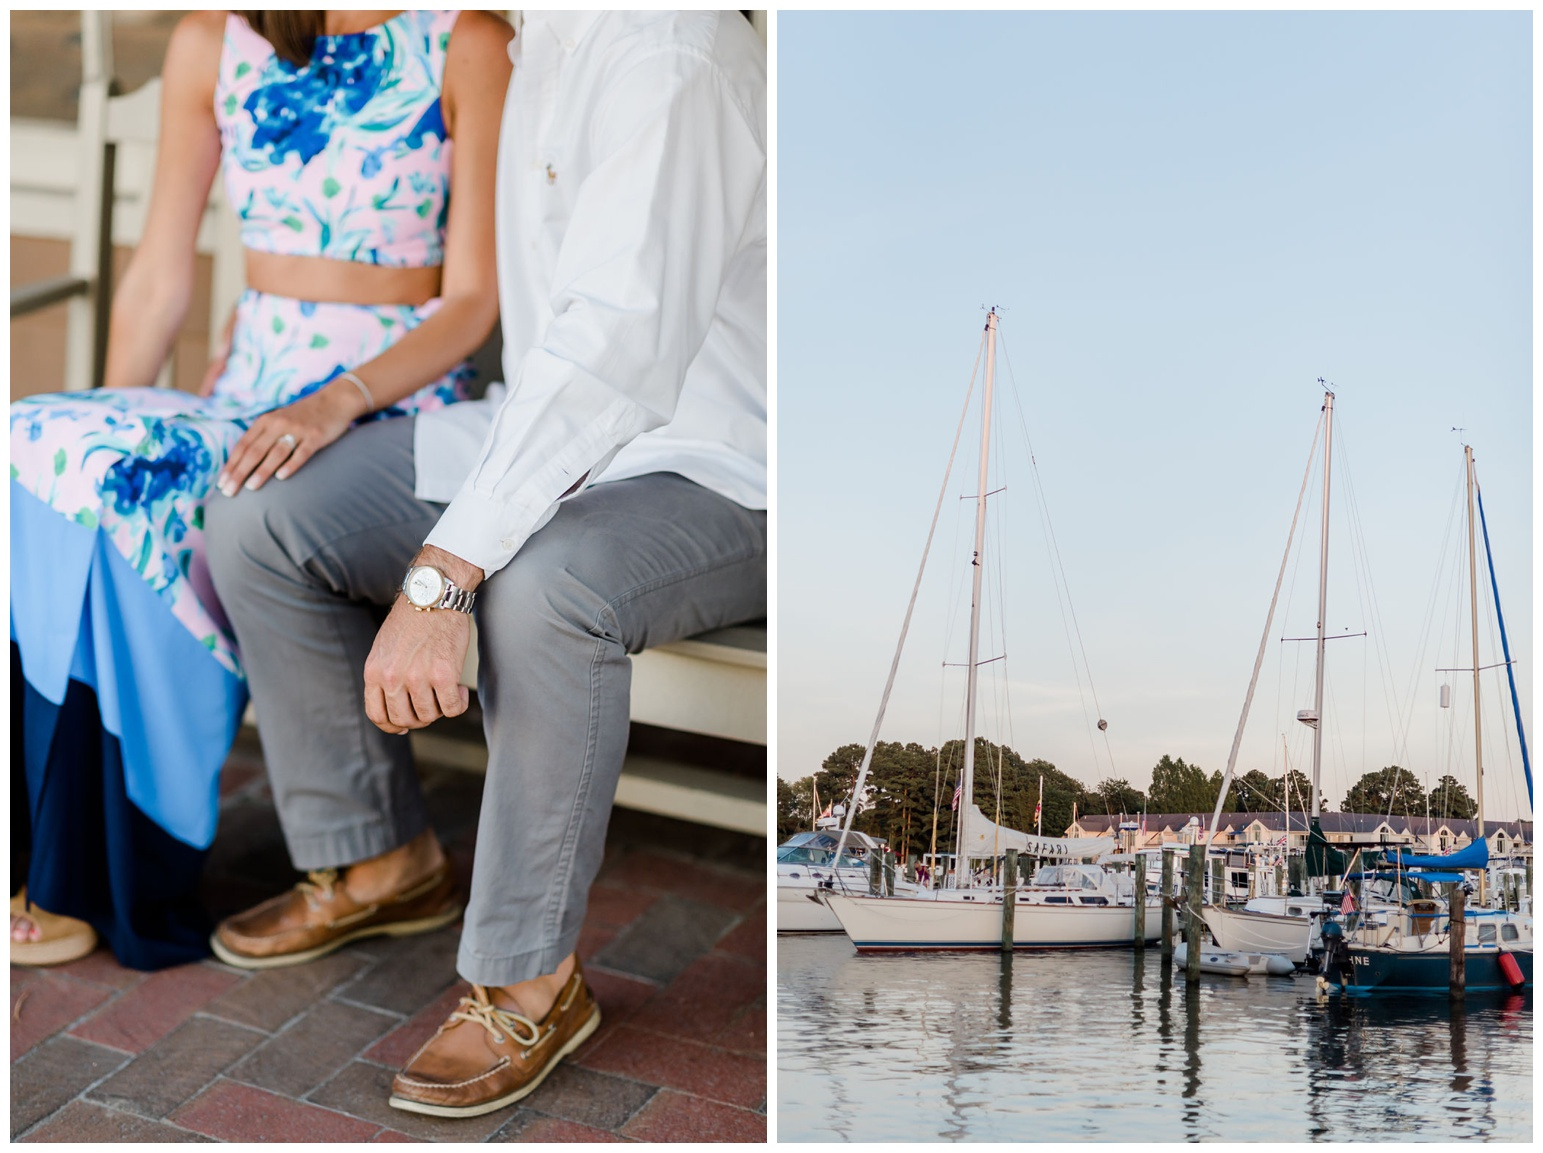 photos of couple sitting outside in maryland coastal town venue - st. michaels and sailboats on chesapeake bay - coastal bayside inspiration - bay inspired - summer